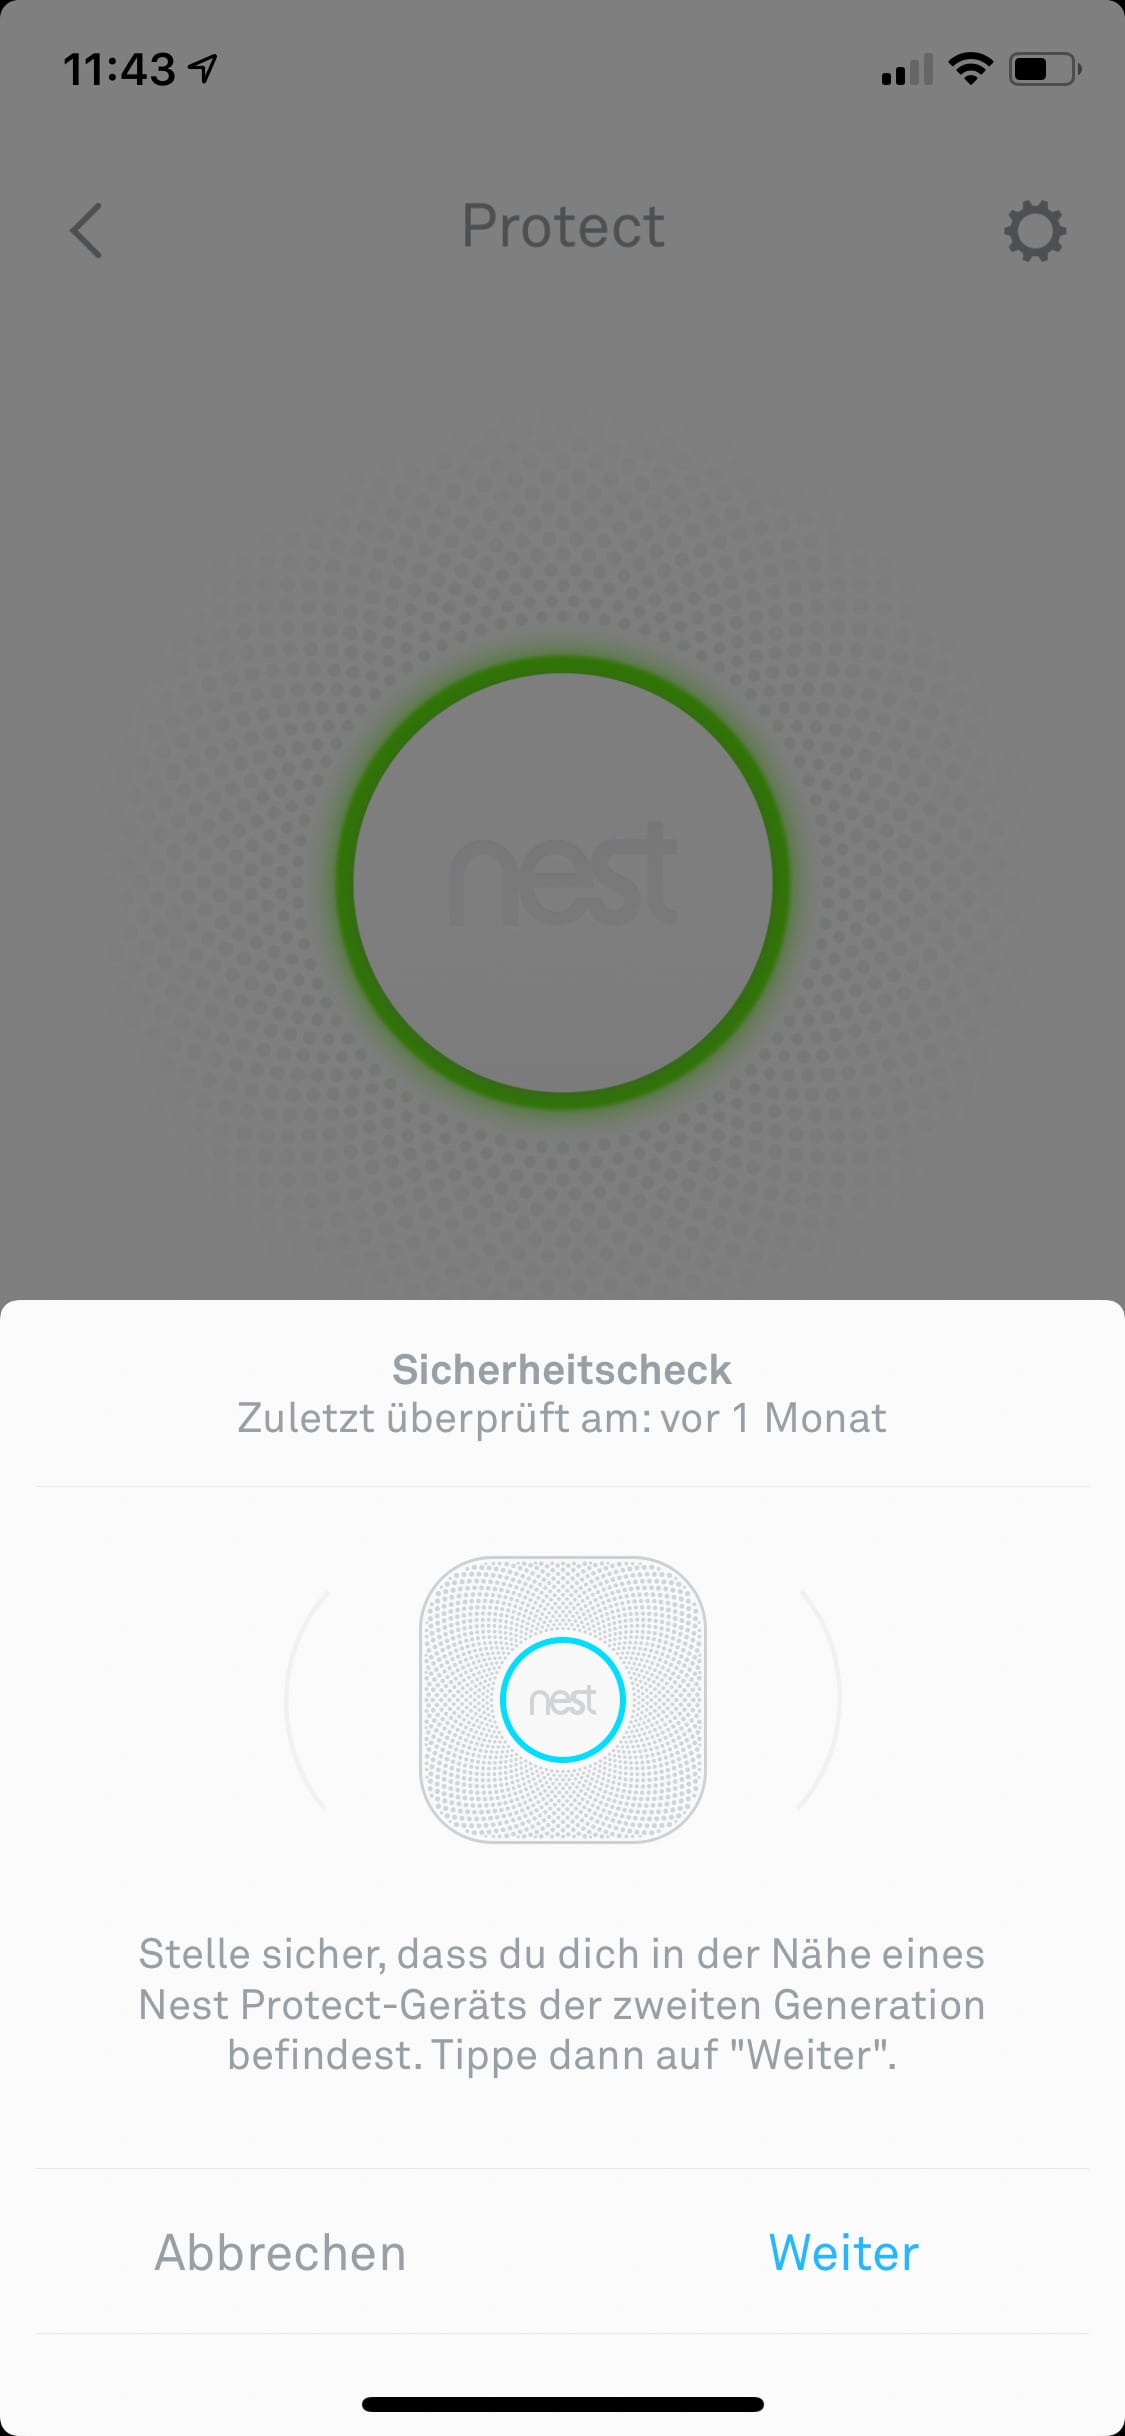 Nest Protect Software (App) 11